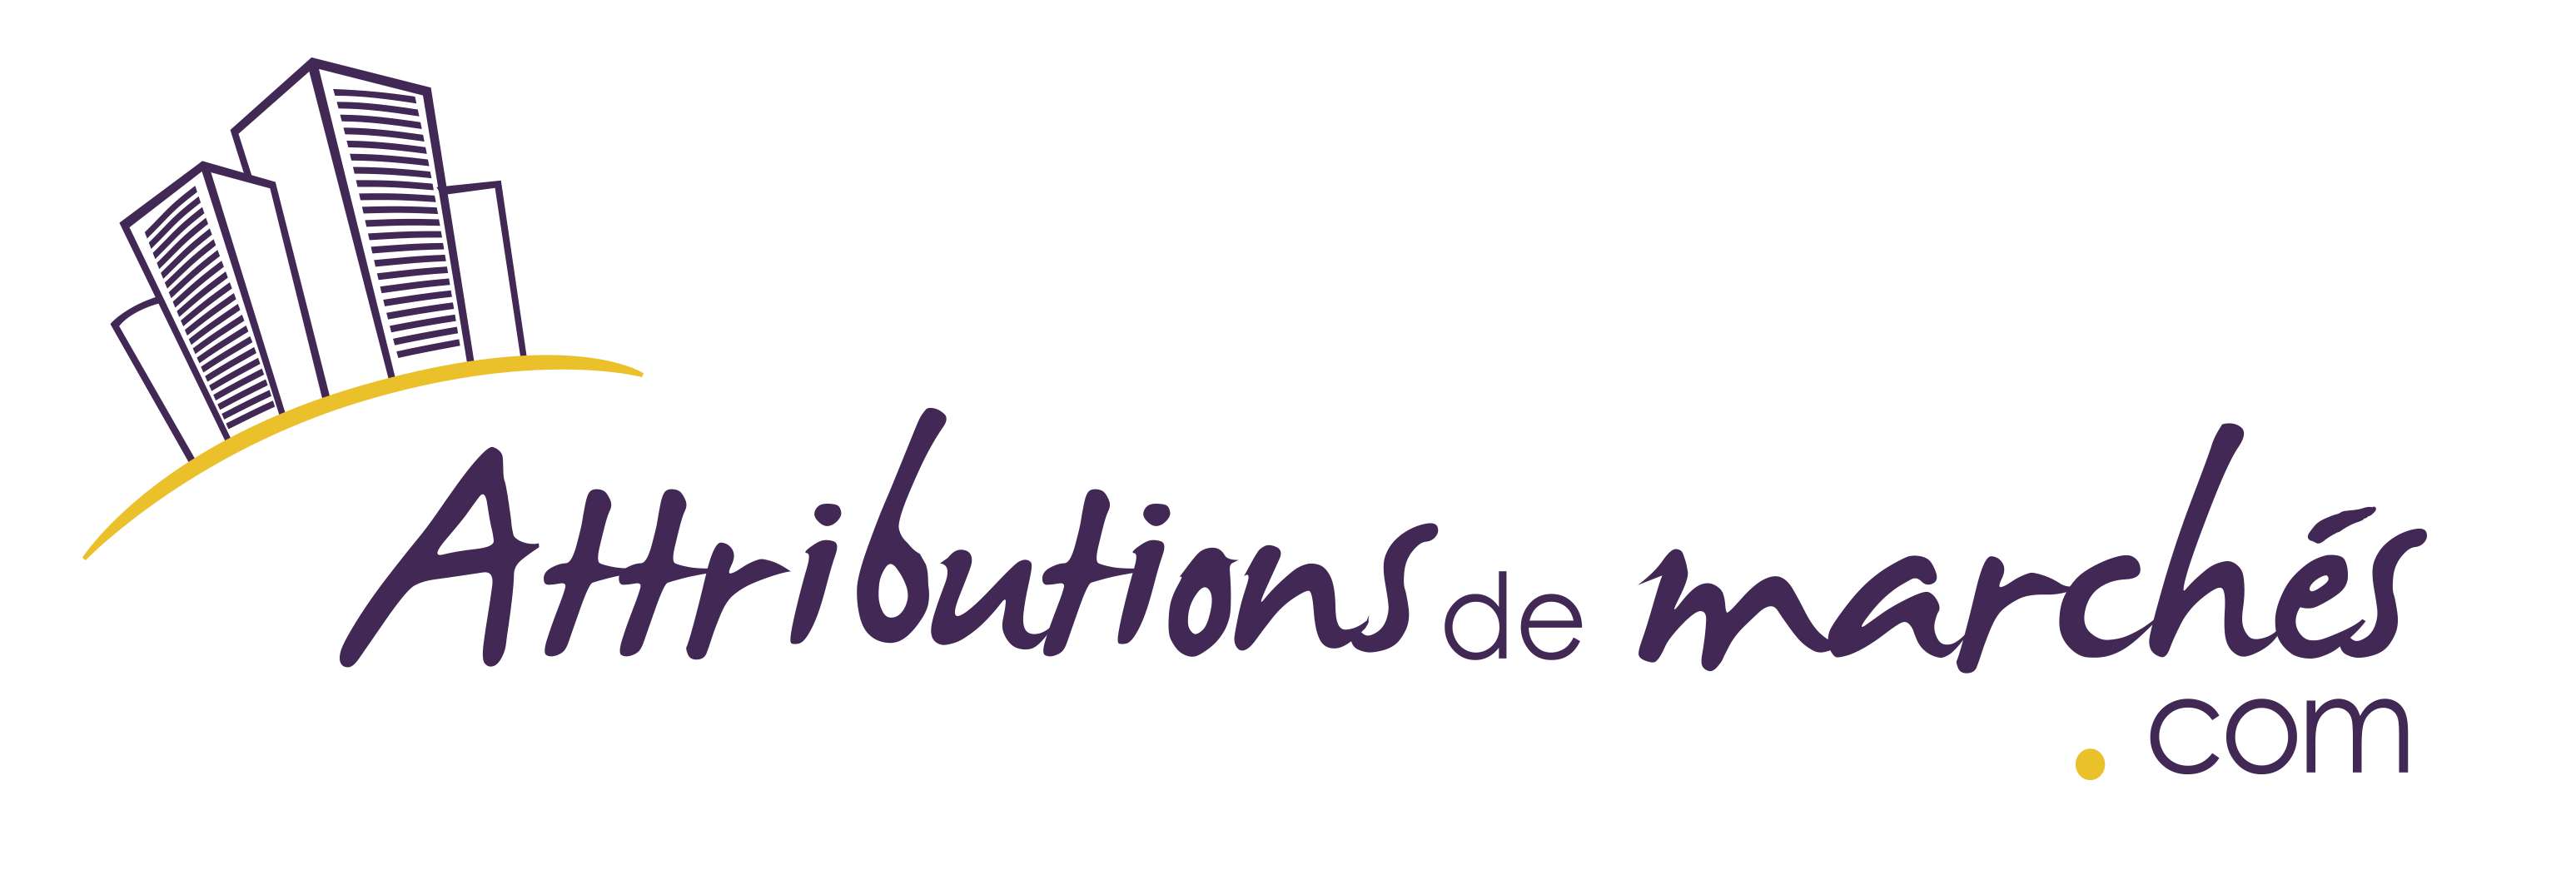 https://www.attributions-de-marches.com/